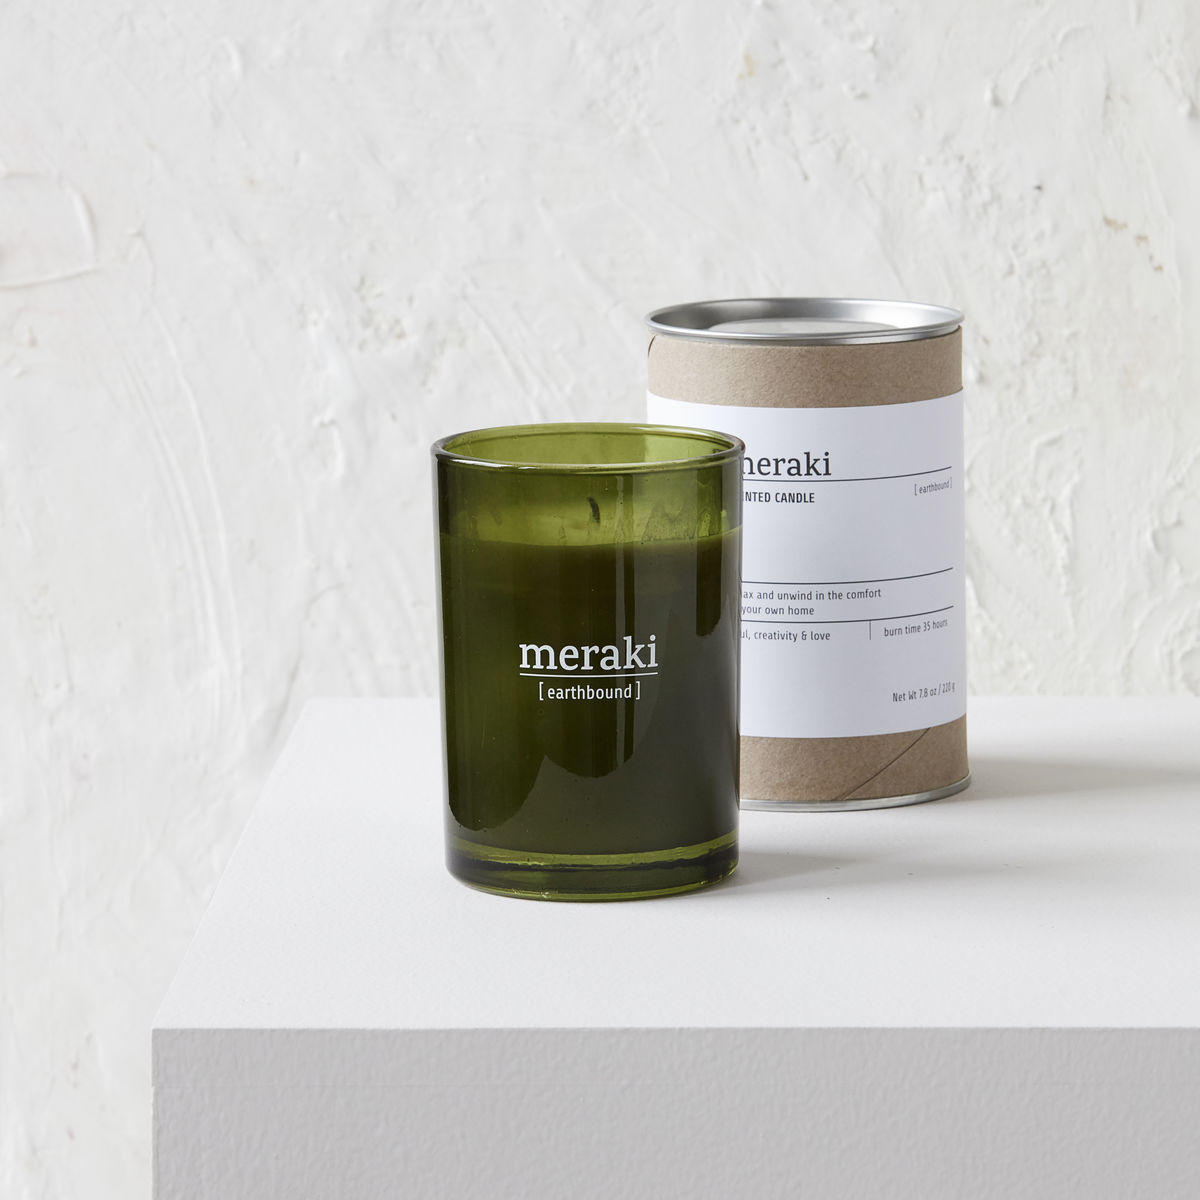 Earthbound Meraki Candle